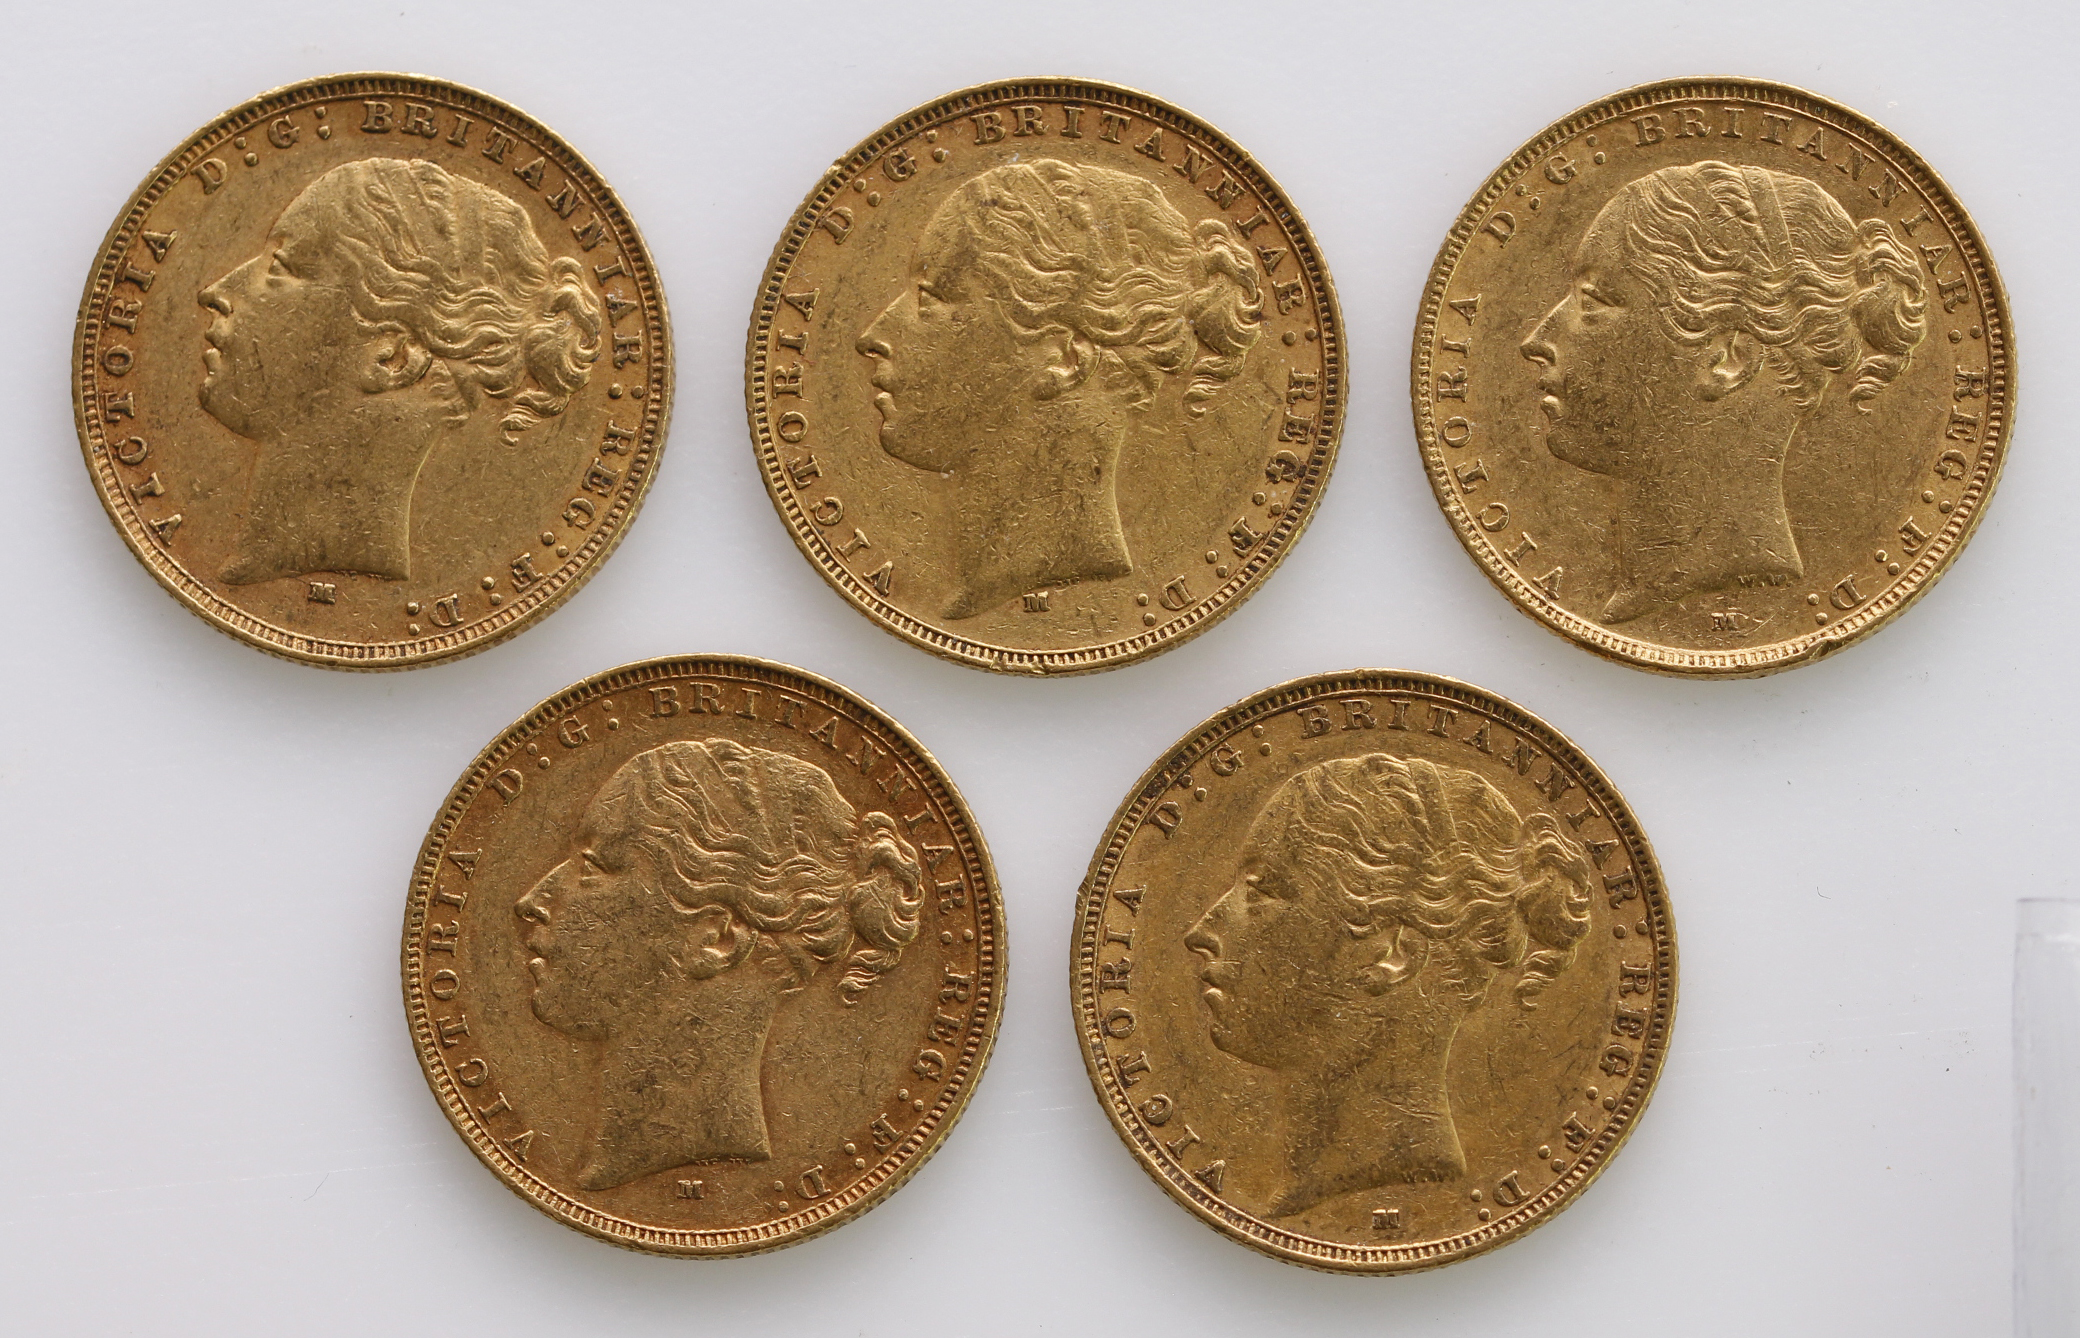 Sovereigns (5) All St George Melbourne Mint. 1878, 1879, 1882, 1884 & 1885. VF or better